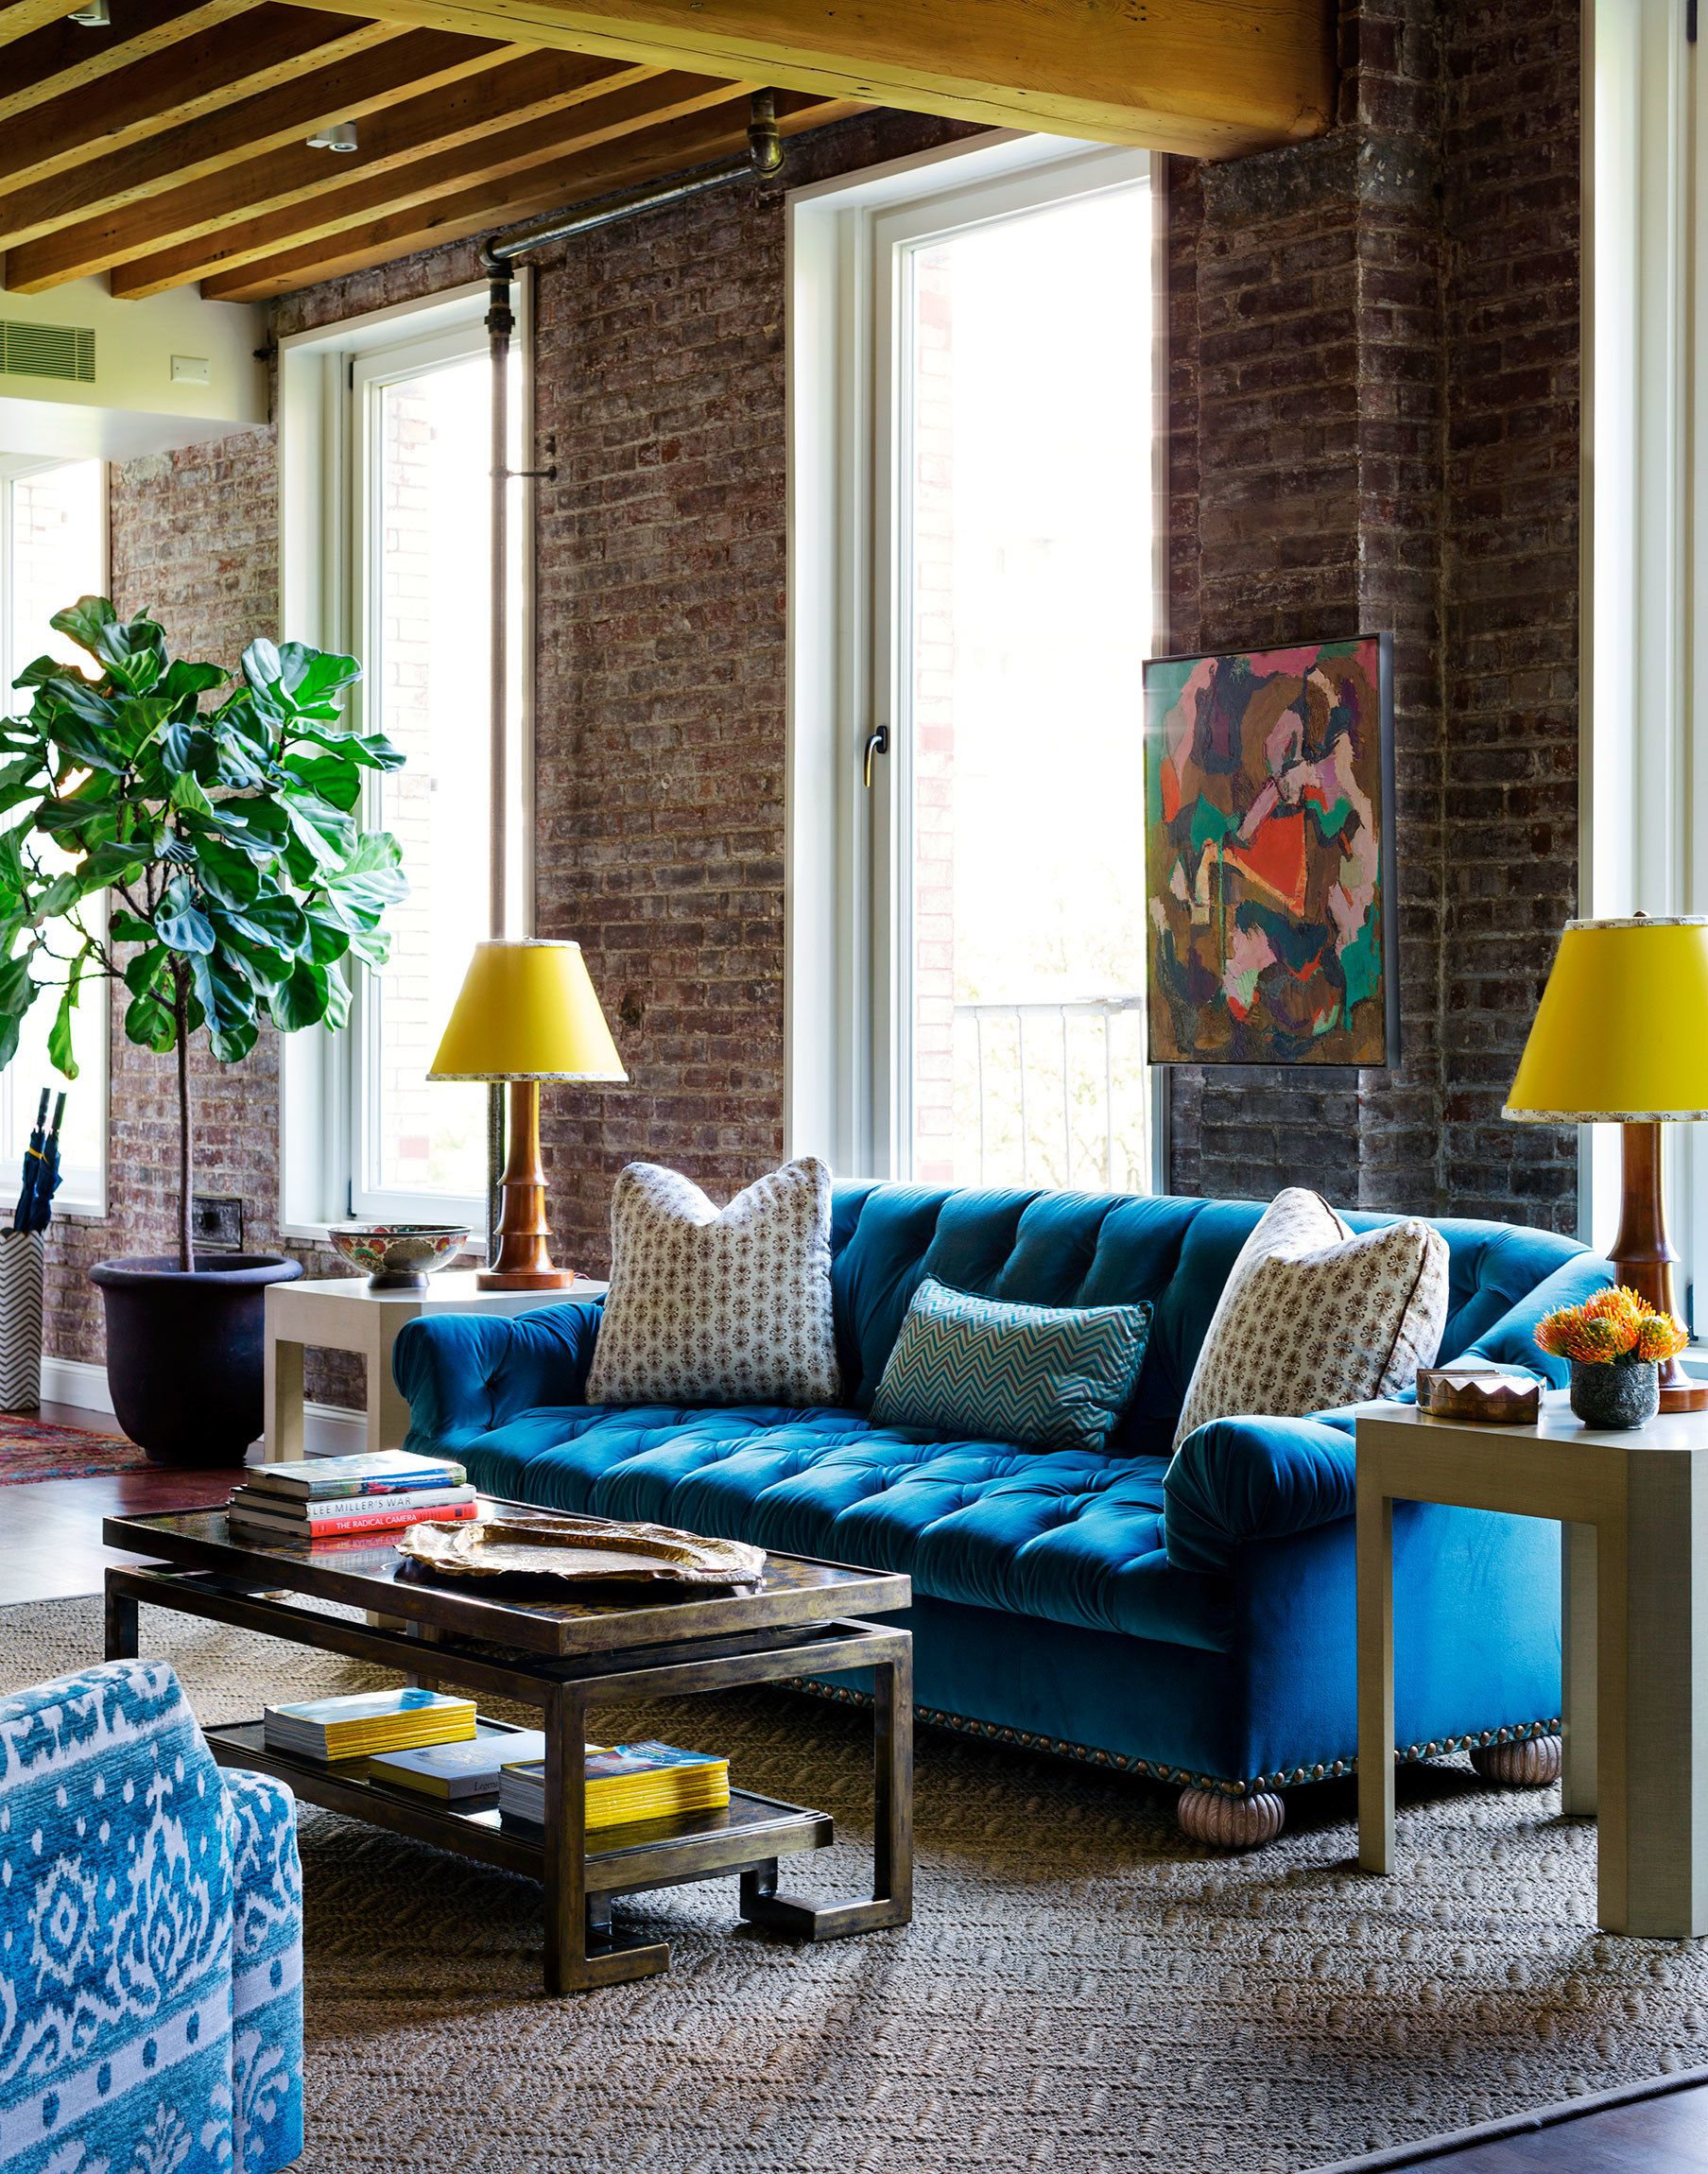 Adding Color To Living Room Part - 17: Add Bright Color Accents To Your Home Photos | Architectural Digest